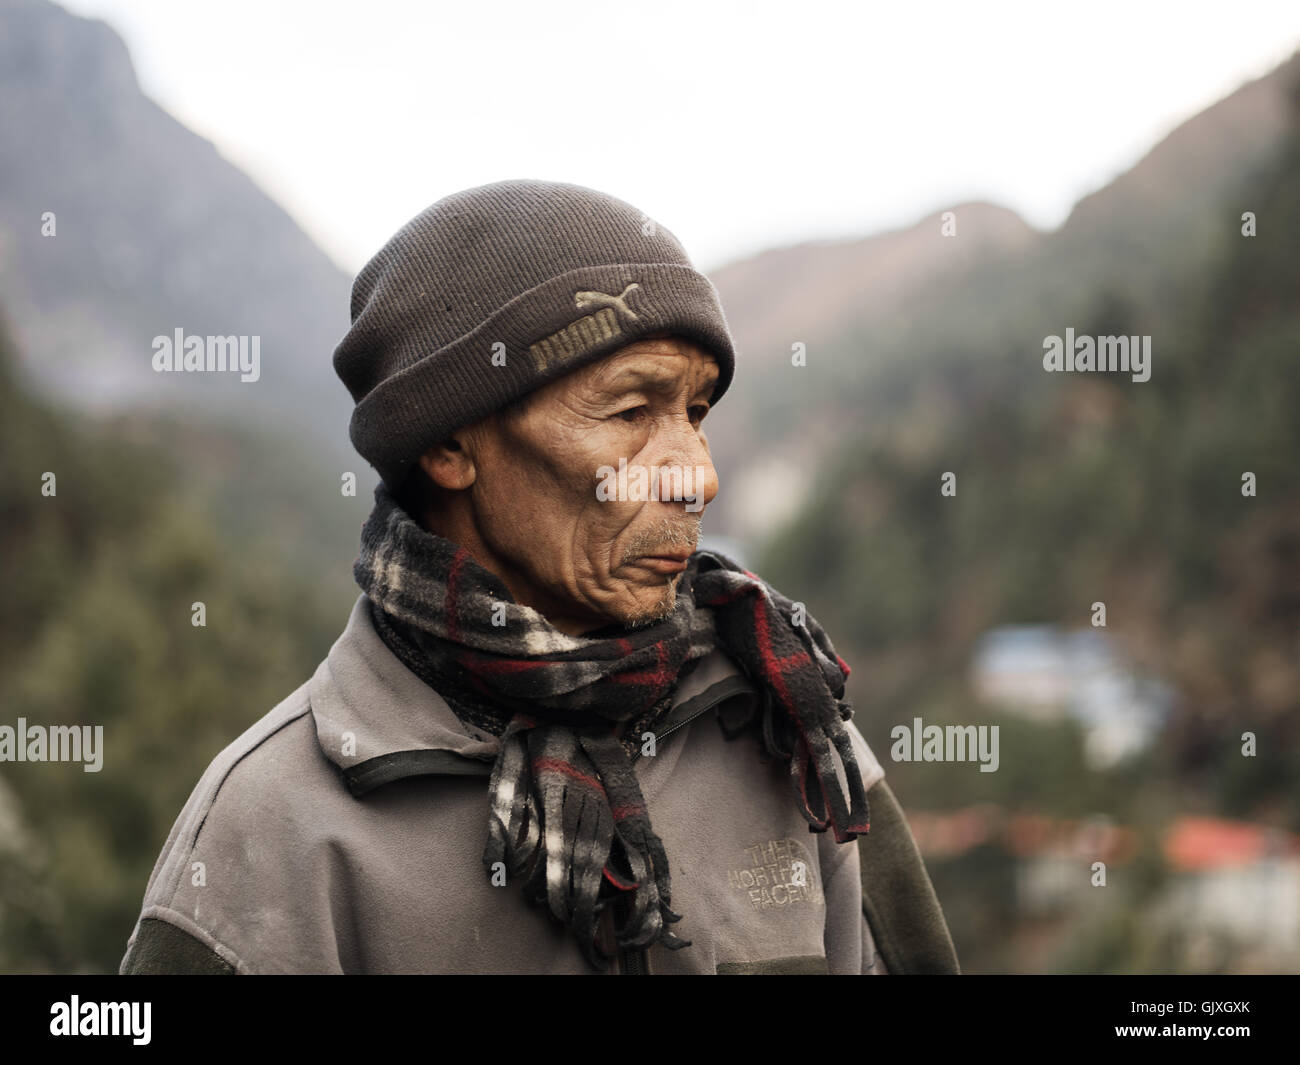 A Nepalese man journeying through Everest Base Camp - Stock Image